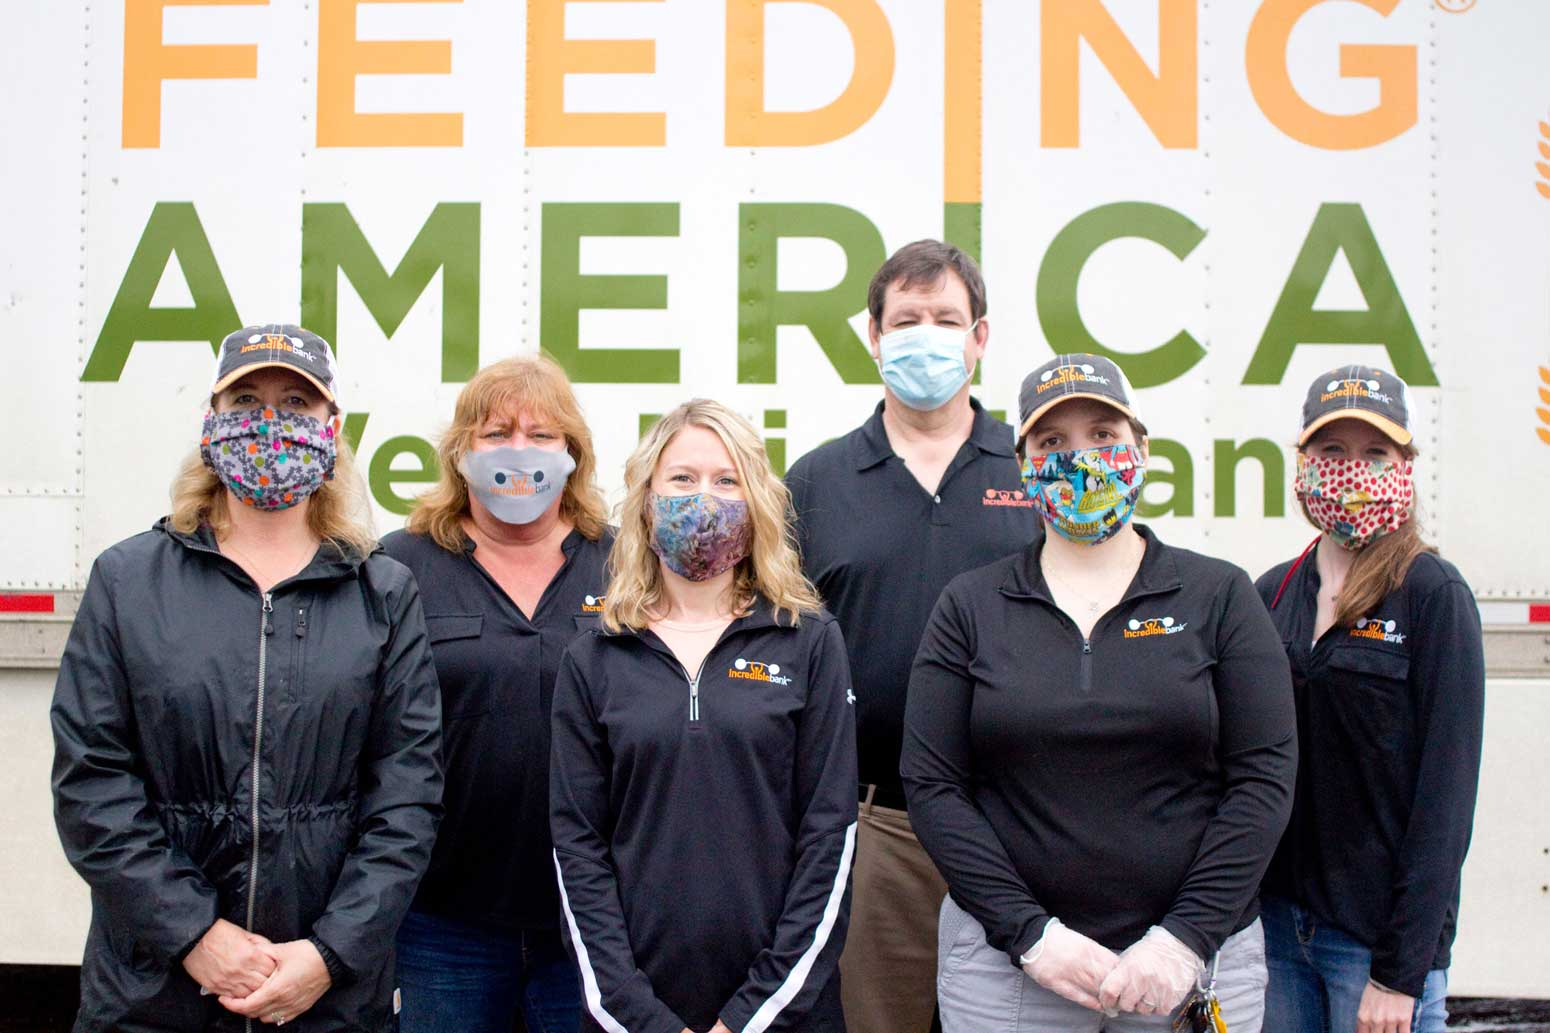 IncredibleBank staff in front of a Feeding America semi